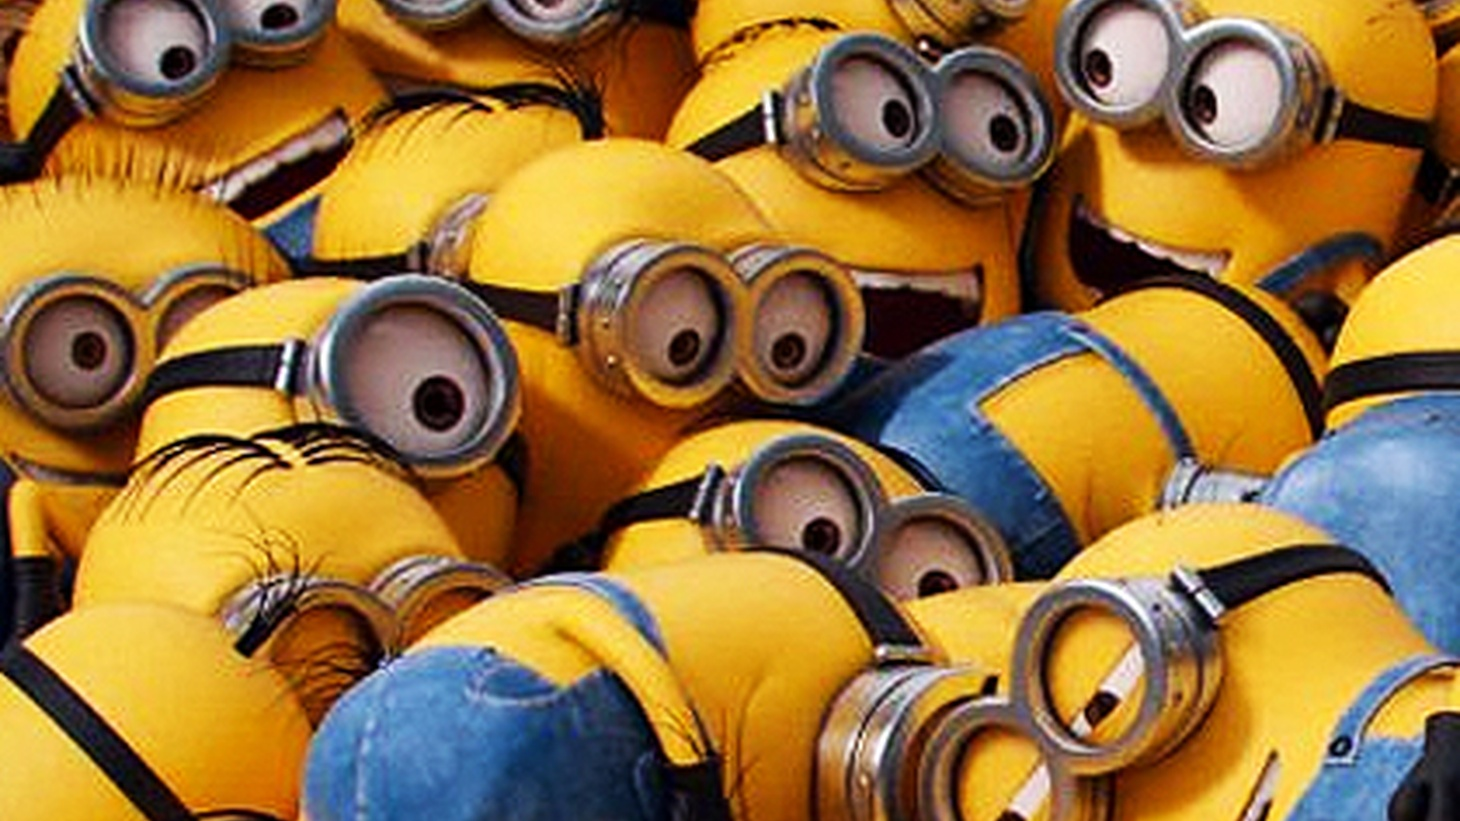 Minions are mischievous sidekicks who keep getting into trouble of their own making.